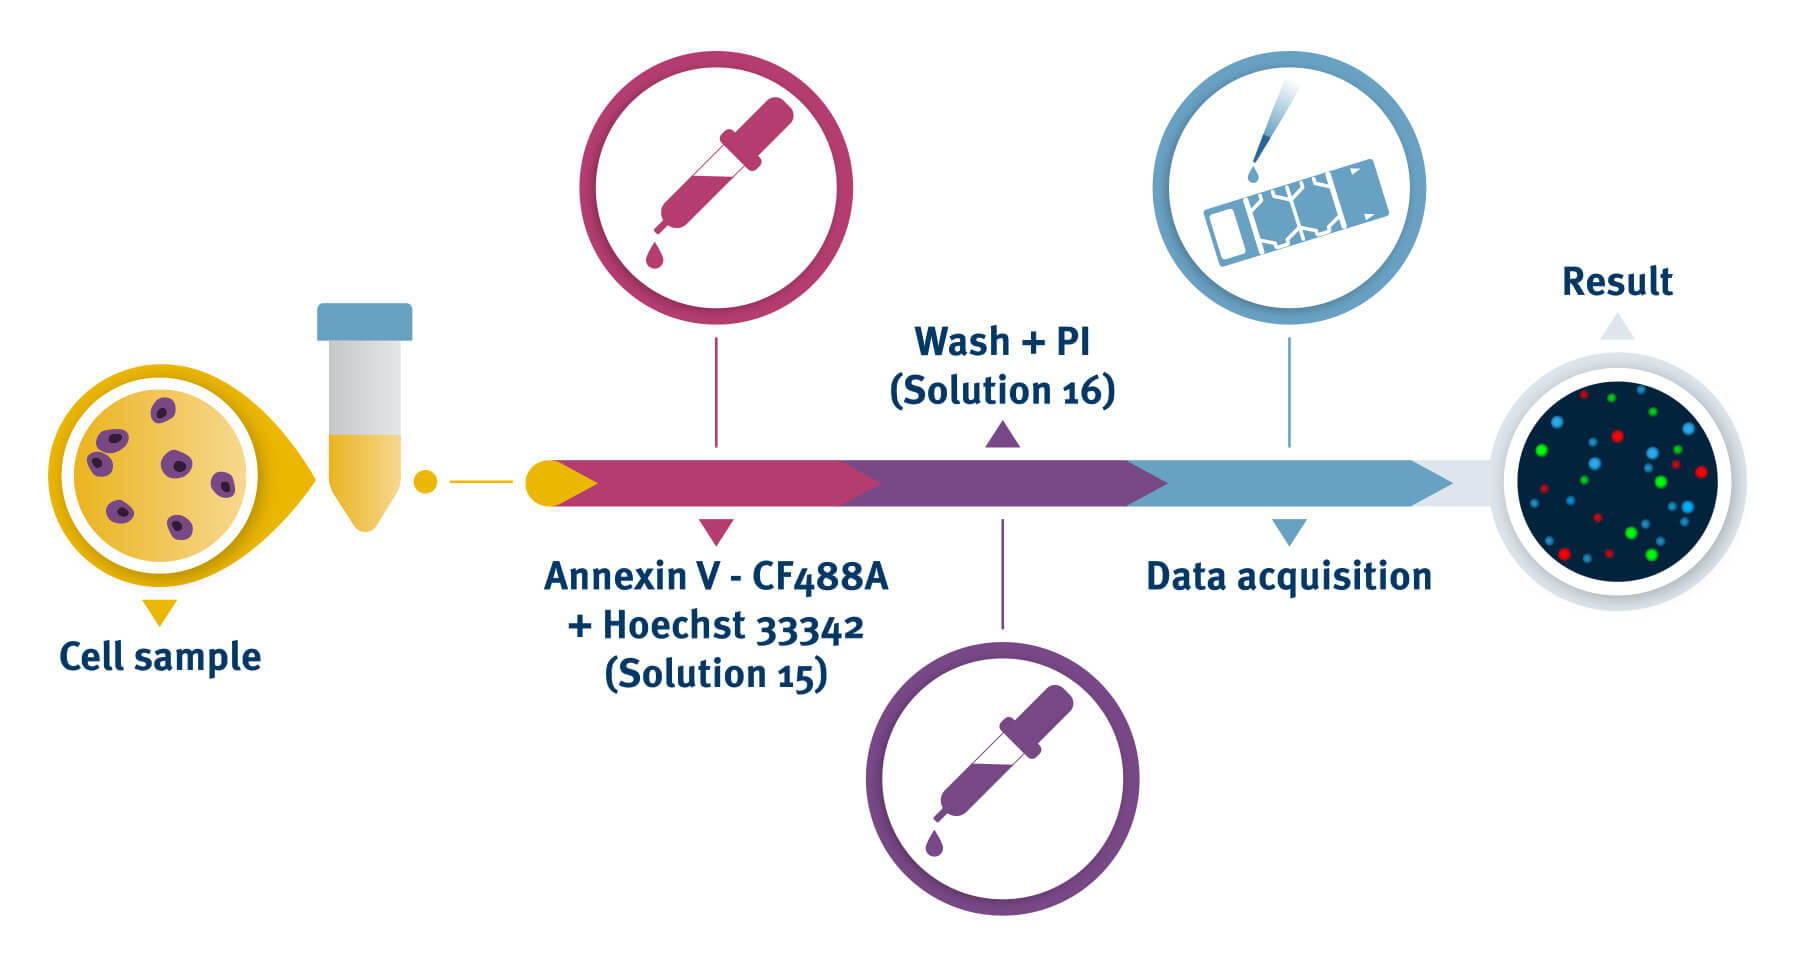 Annexin V Assay process with the NucleoCounter®